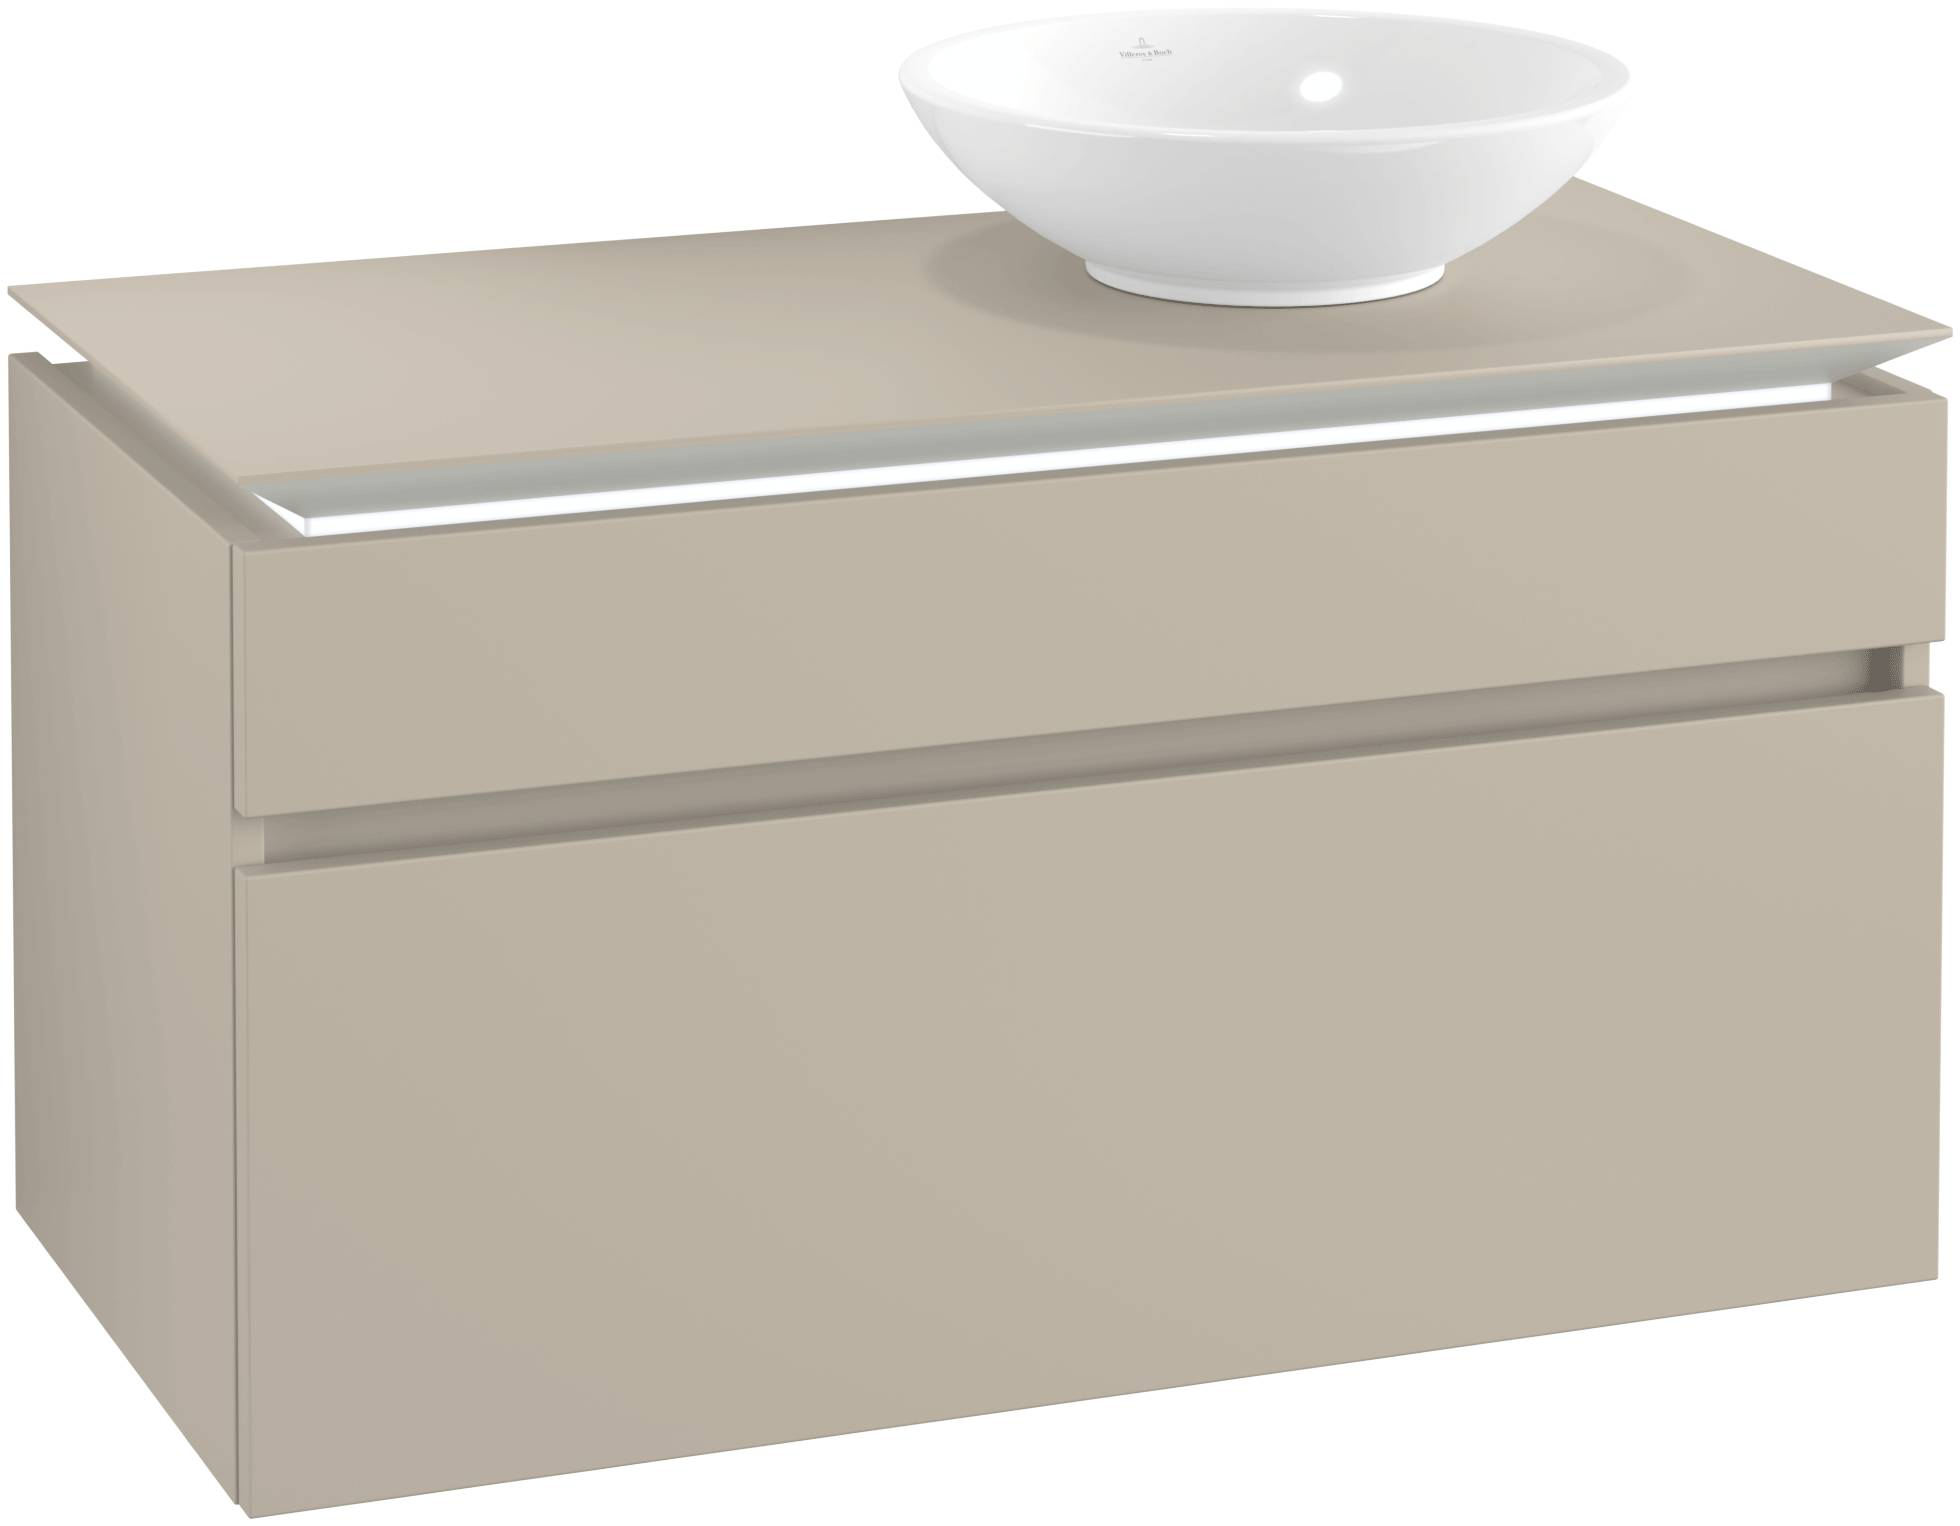 Villeroy & Boch Villeroy & Boch Legato - Meuble sous lavabo with 2 drawers & 1 cut-out right 1000 x 550 x 500mm soft grey